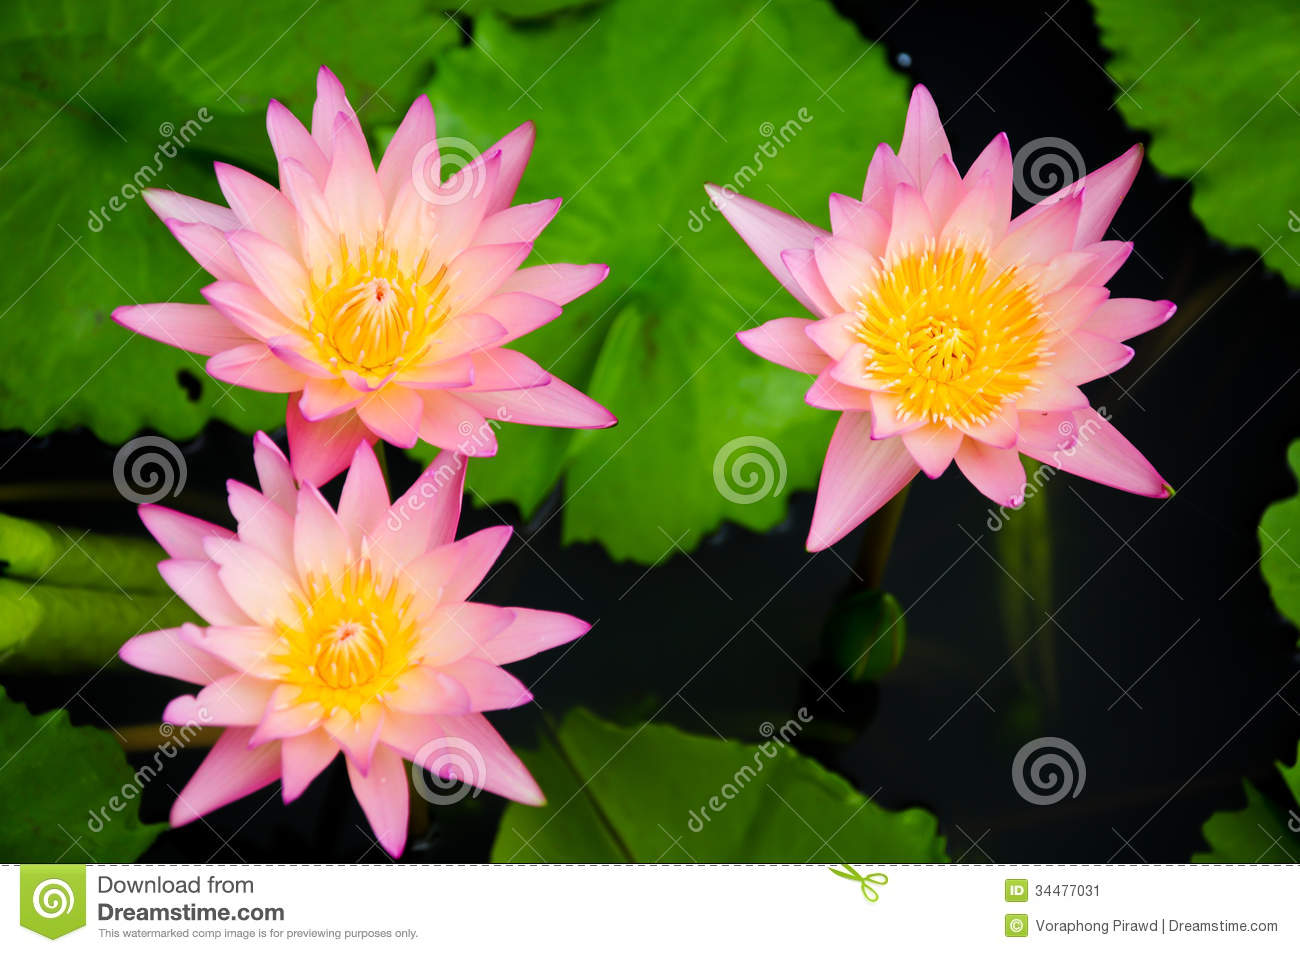 Pink Water Lily Flowers Stock Image Image Of Botany 34477031